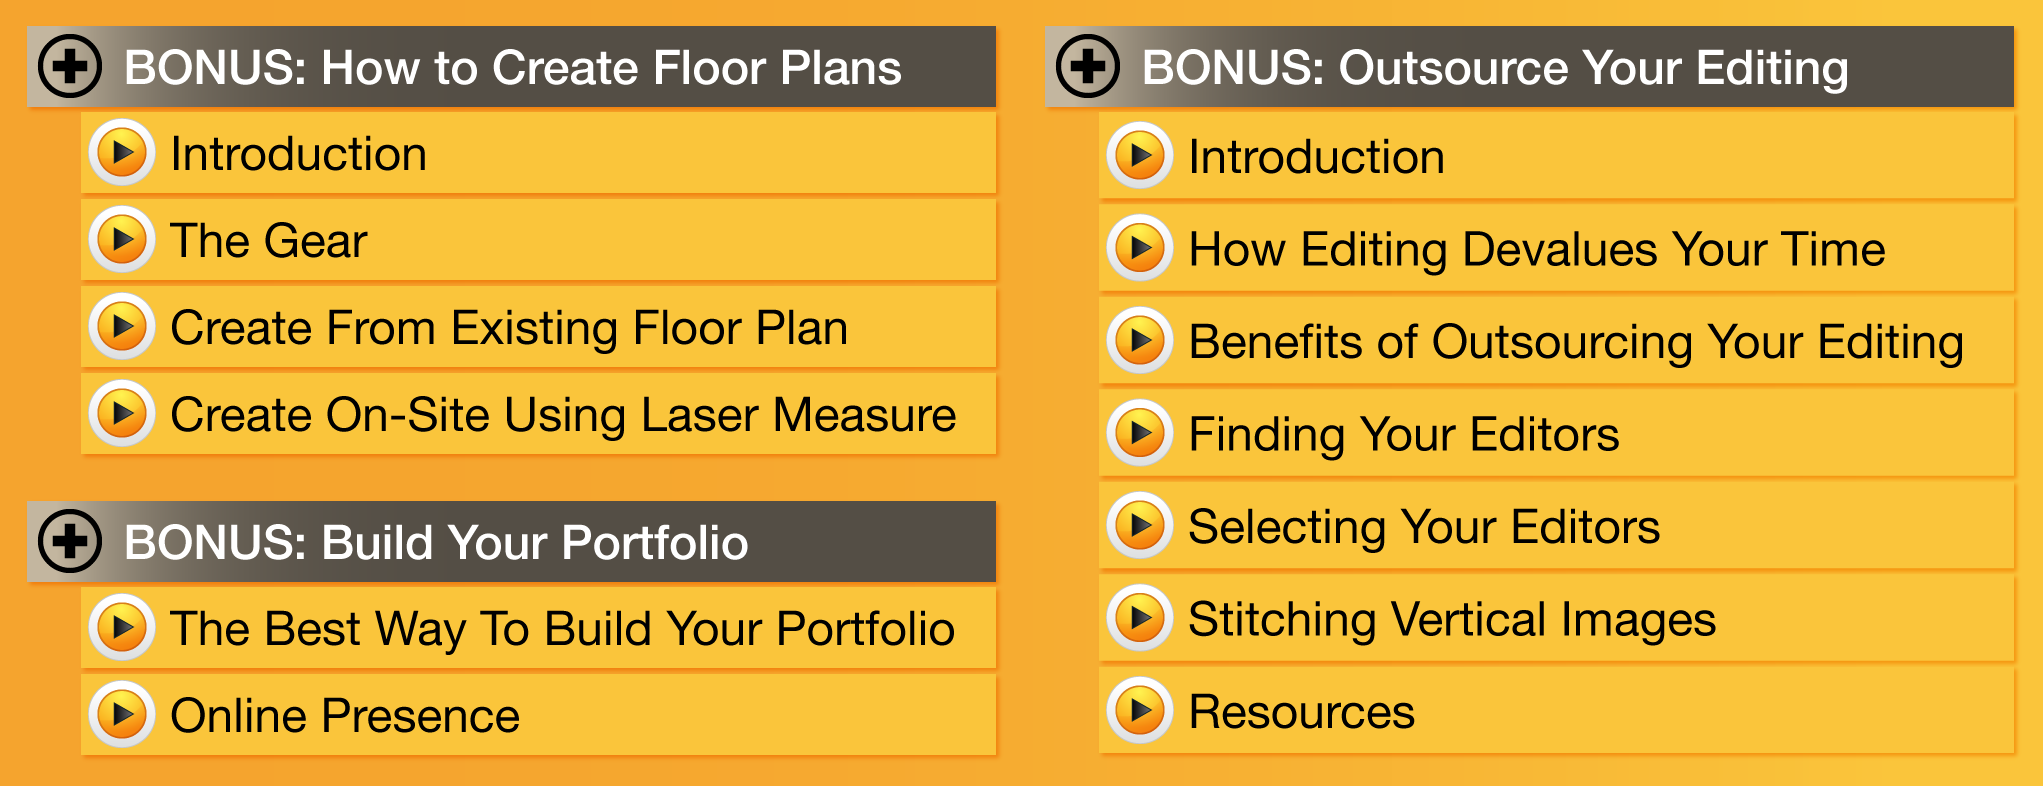 How to Create Real Estate Floor Plans, How to build your photography portfolio and how to outsource your editing